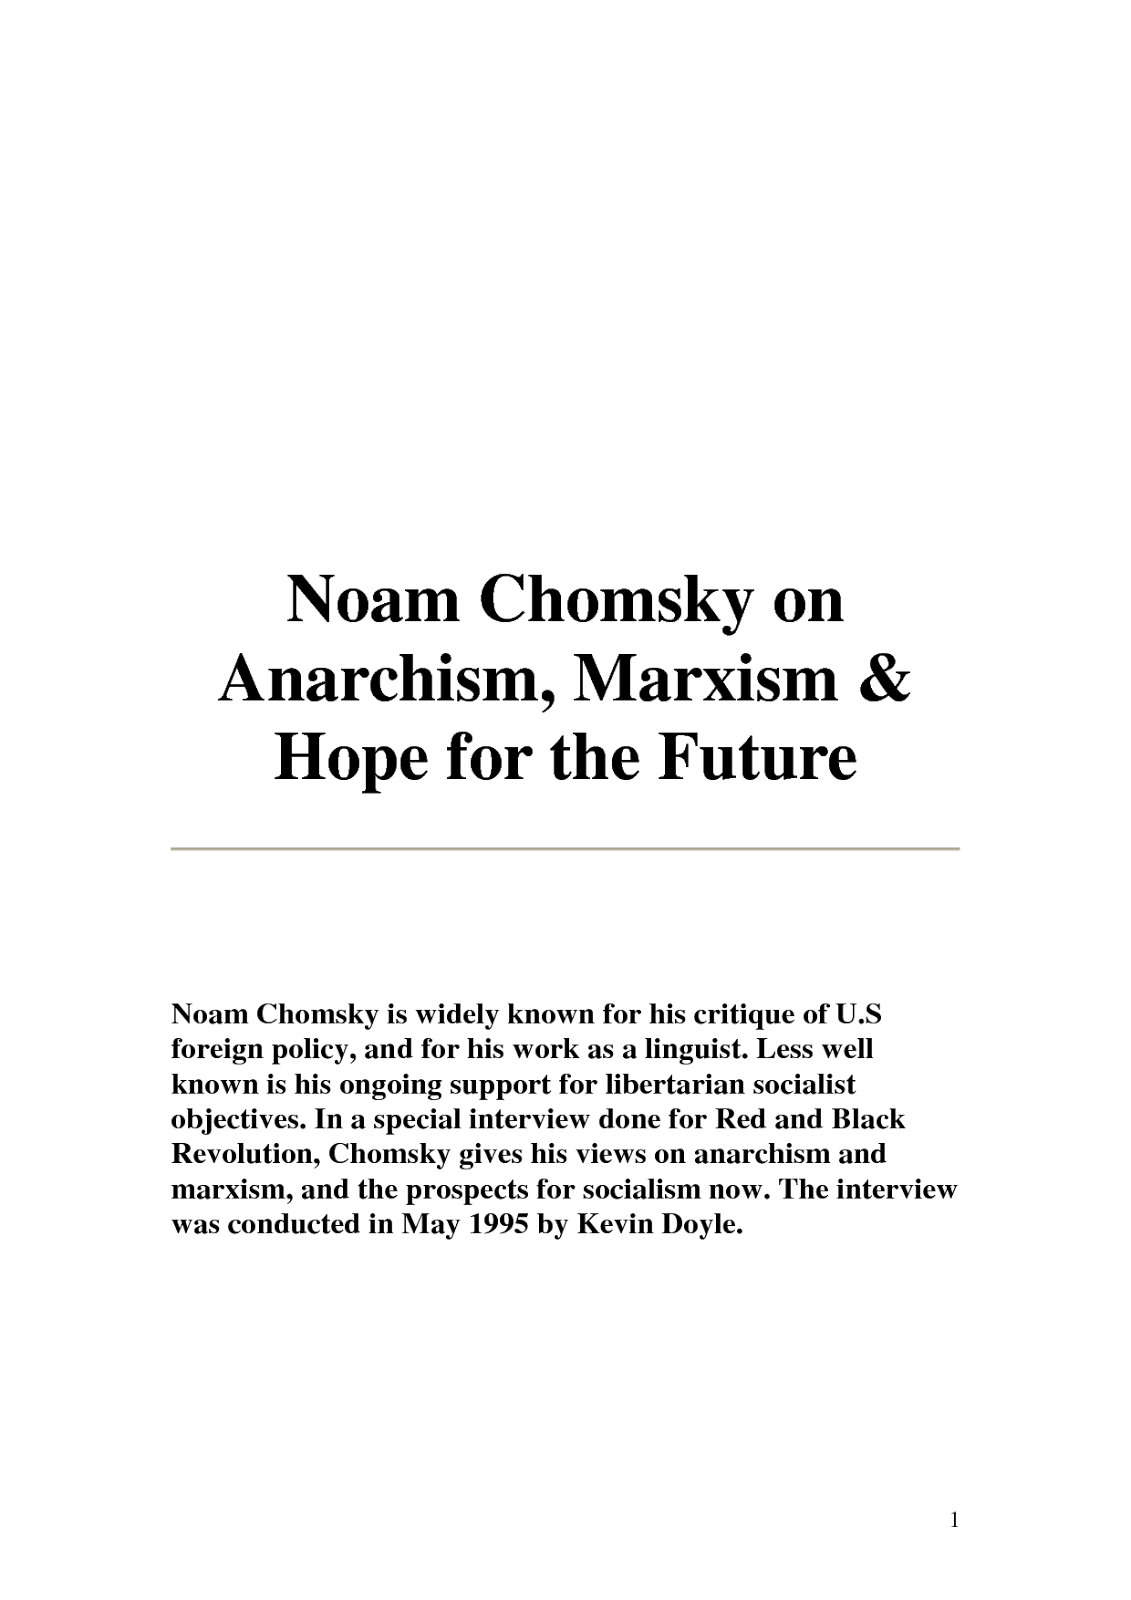 Friends Of Liberty Archives Noam Chomsky Describes Anarchism